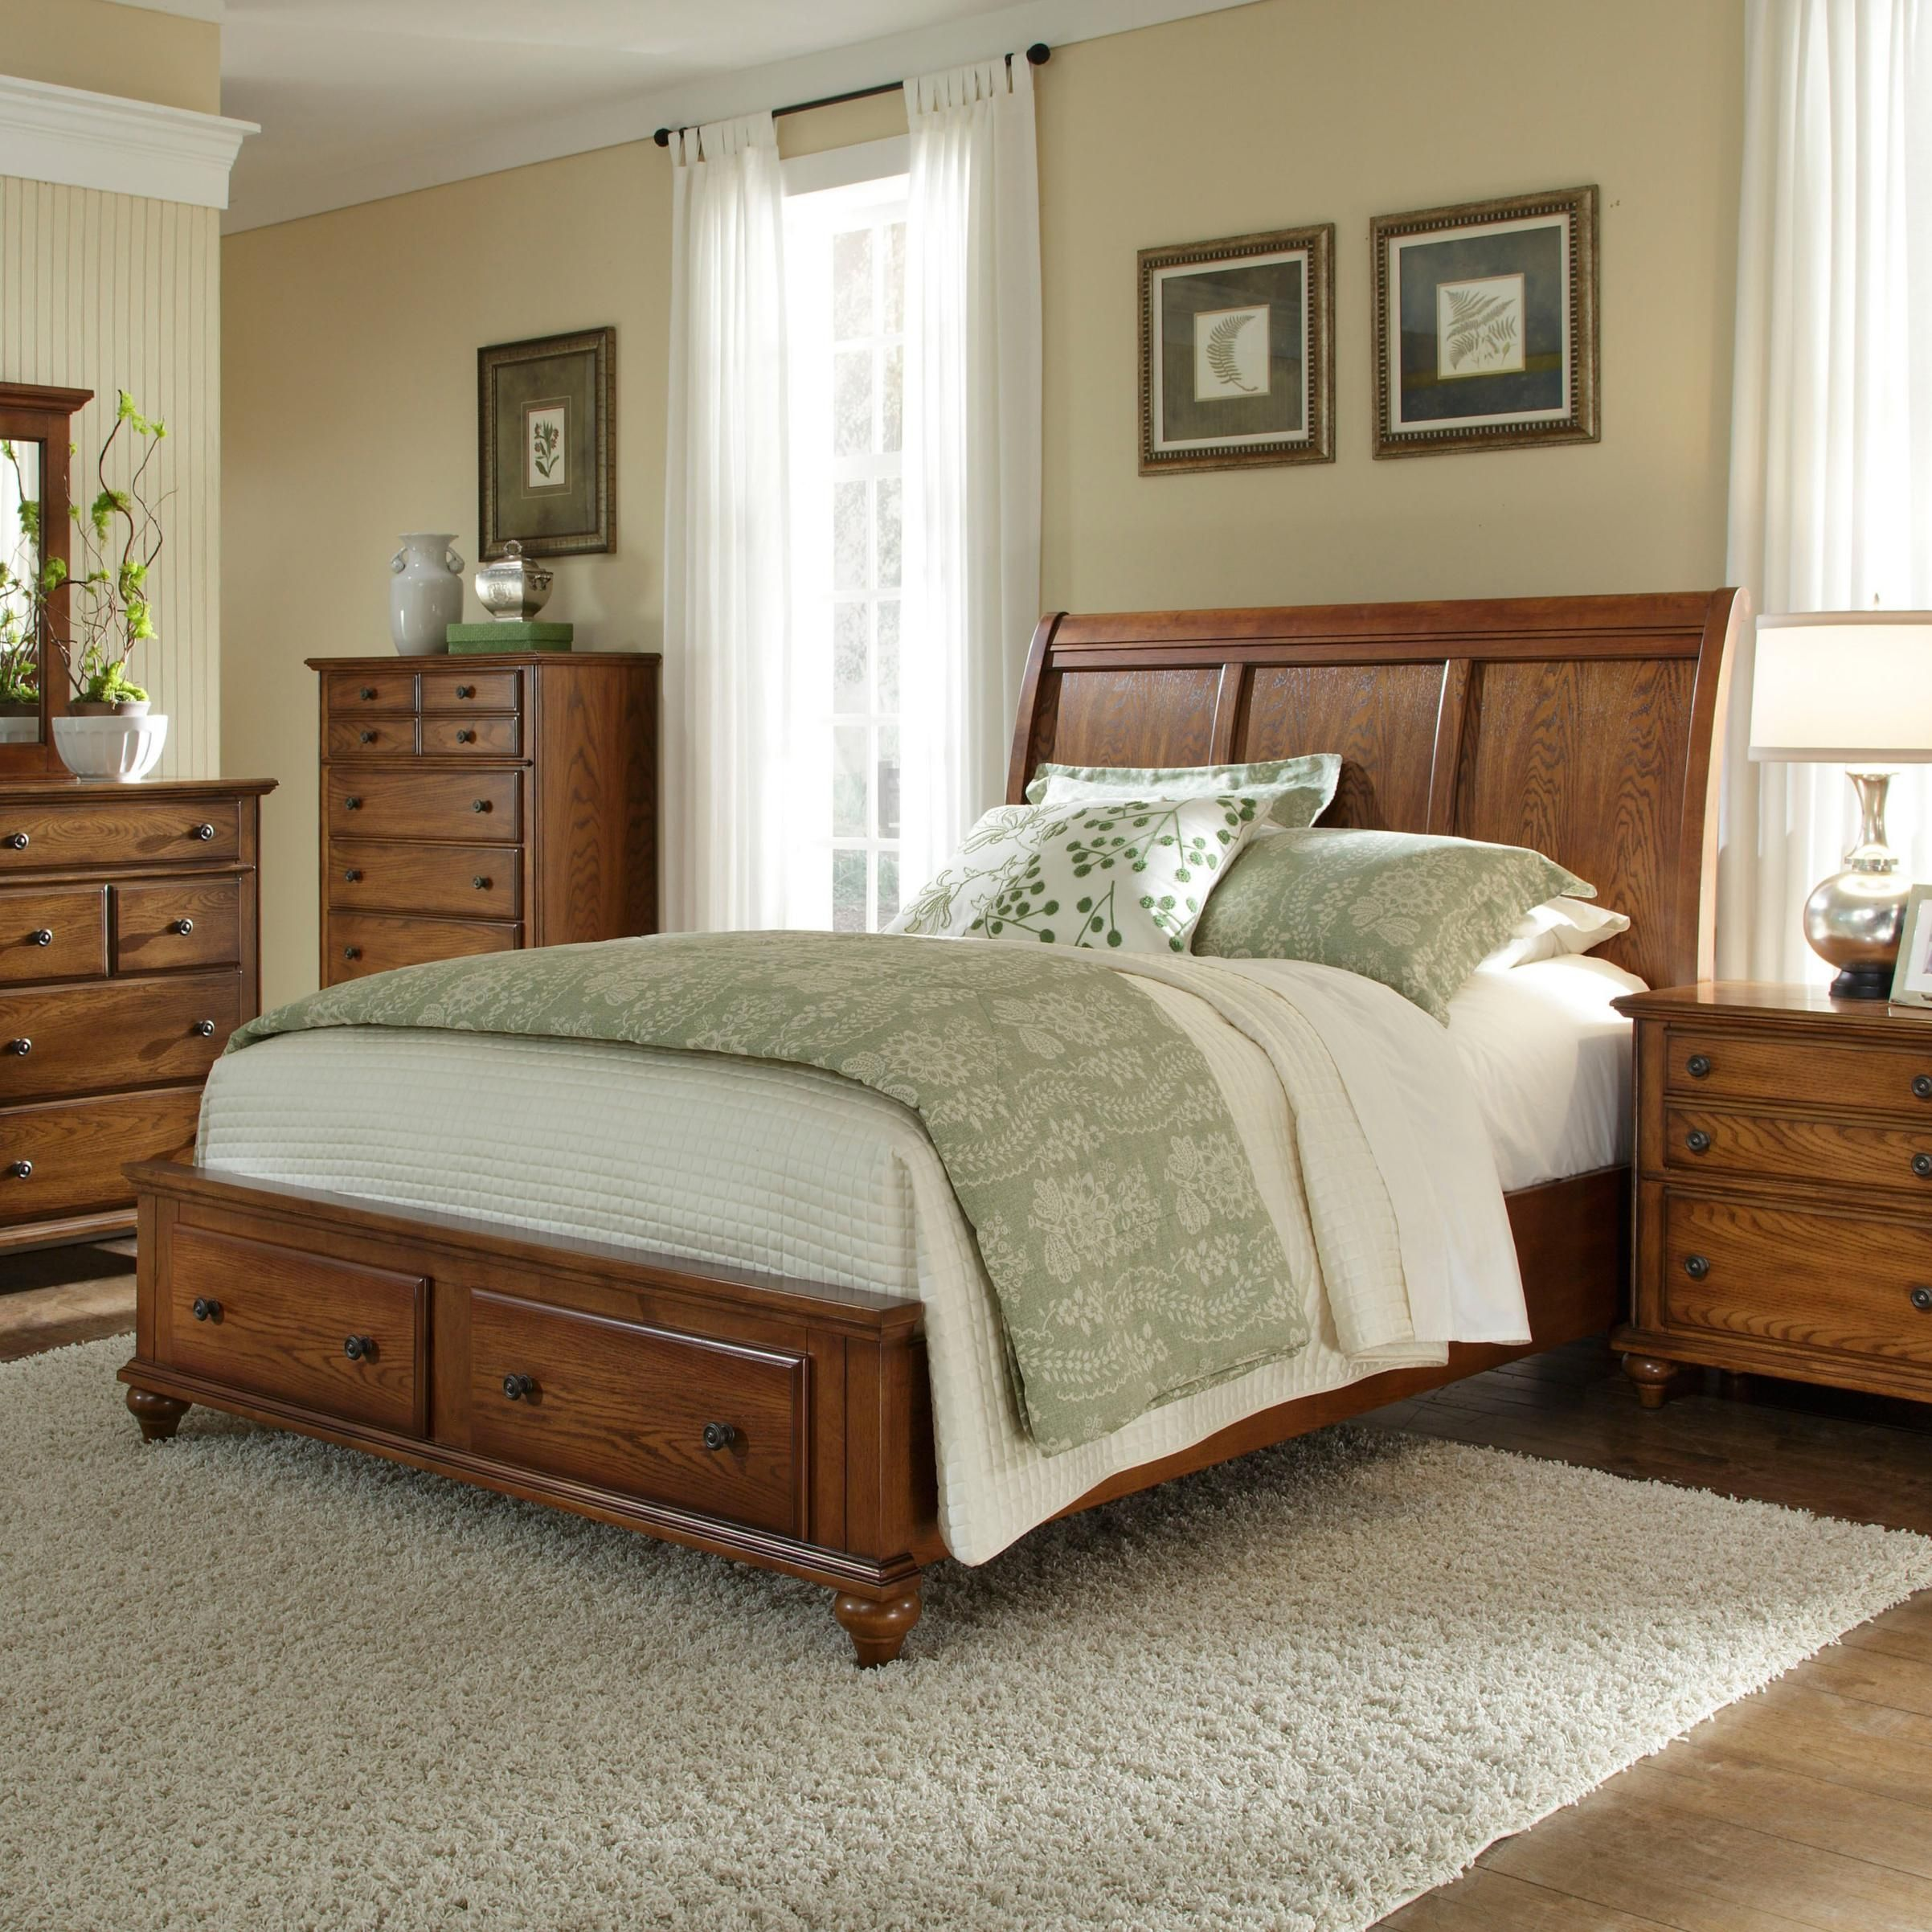 Best The Hayden Bedroom Set Featuring A Sleigh Bed With 2 400 x 300